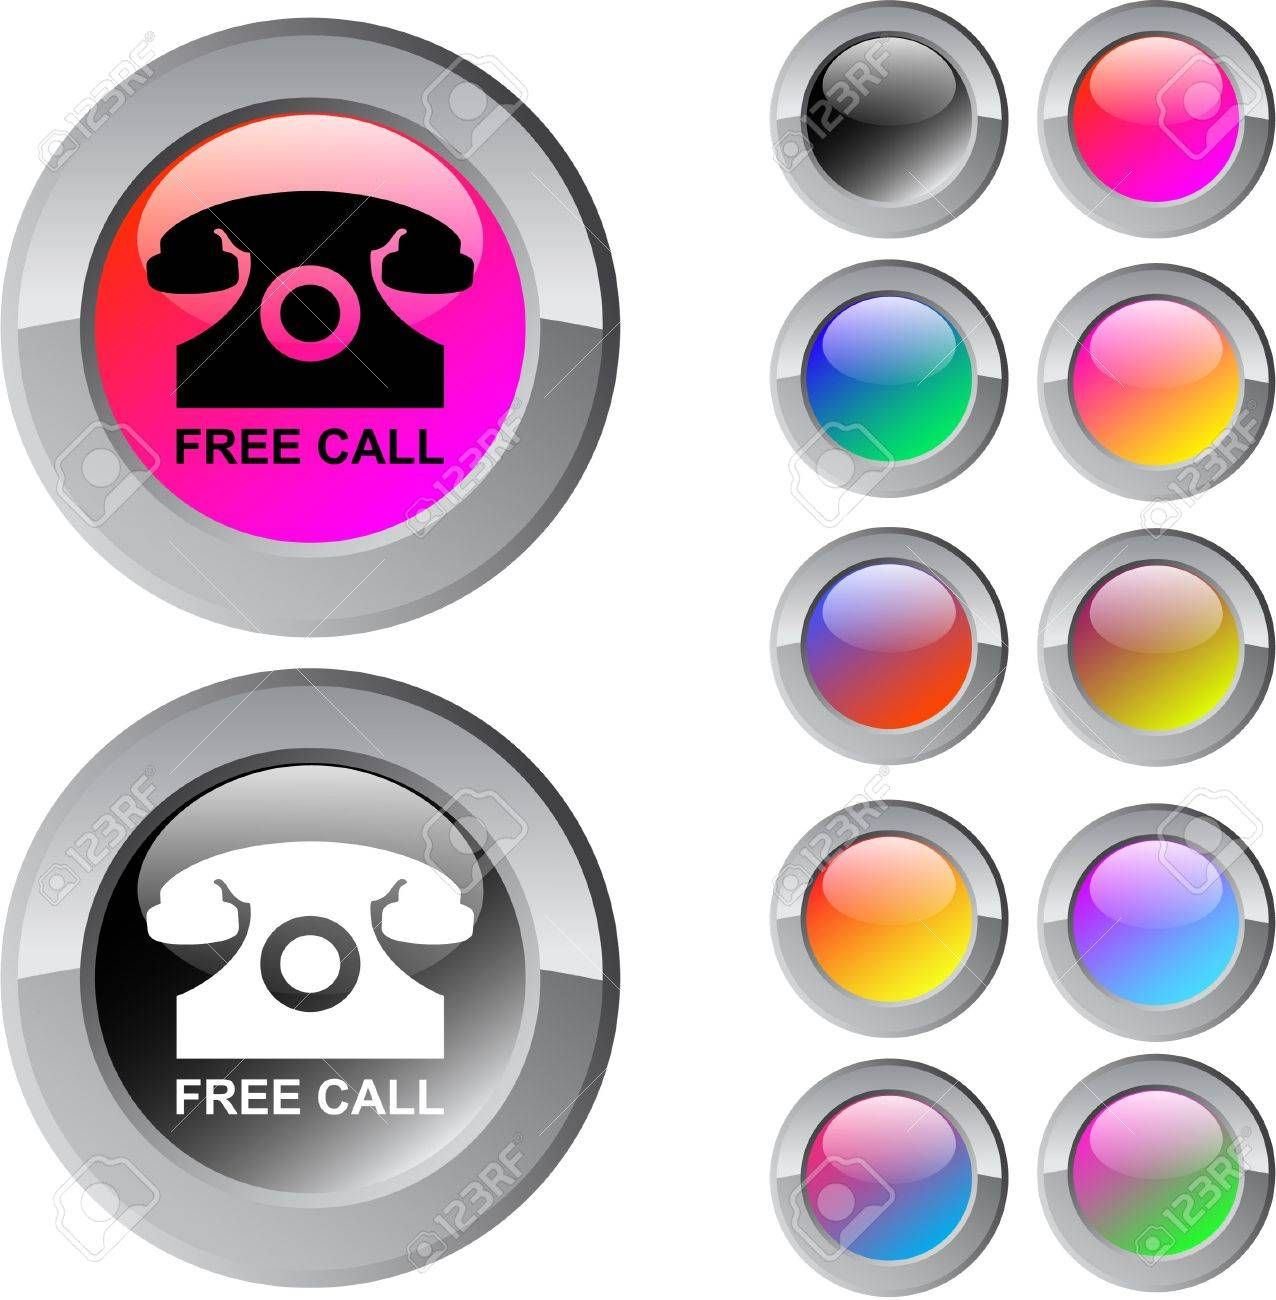 Free call multicolor glossy round web buttons. Stock Vector - 7261702